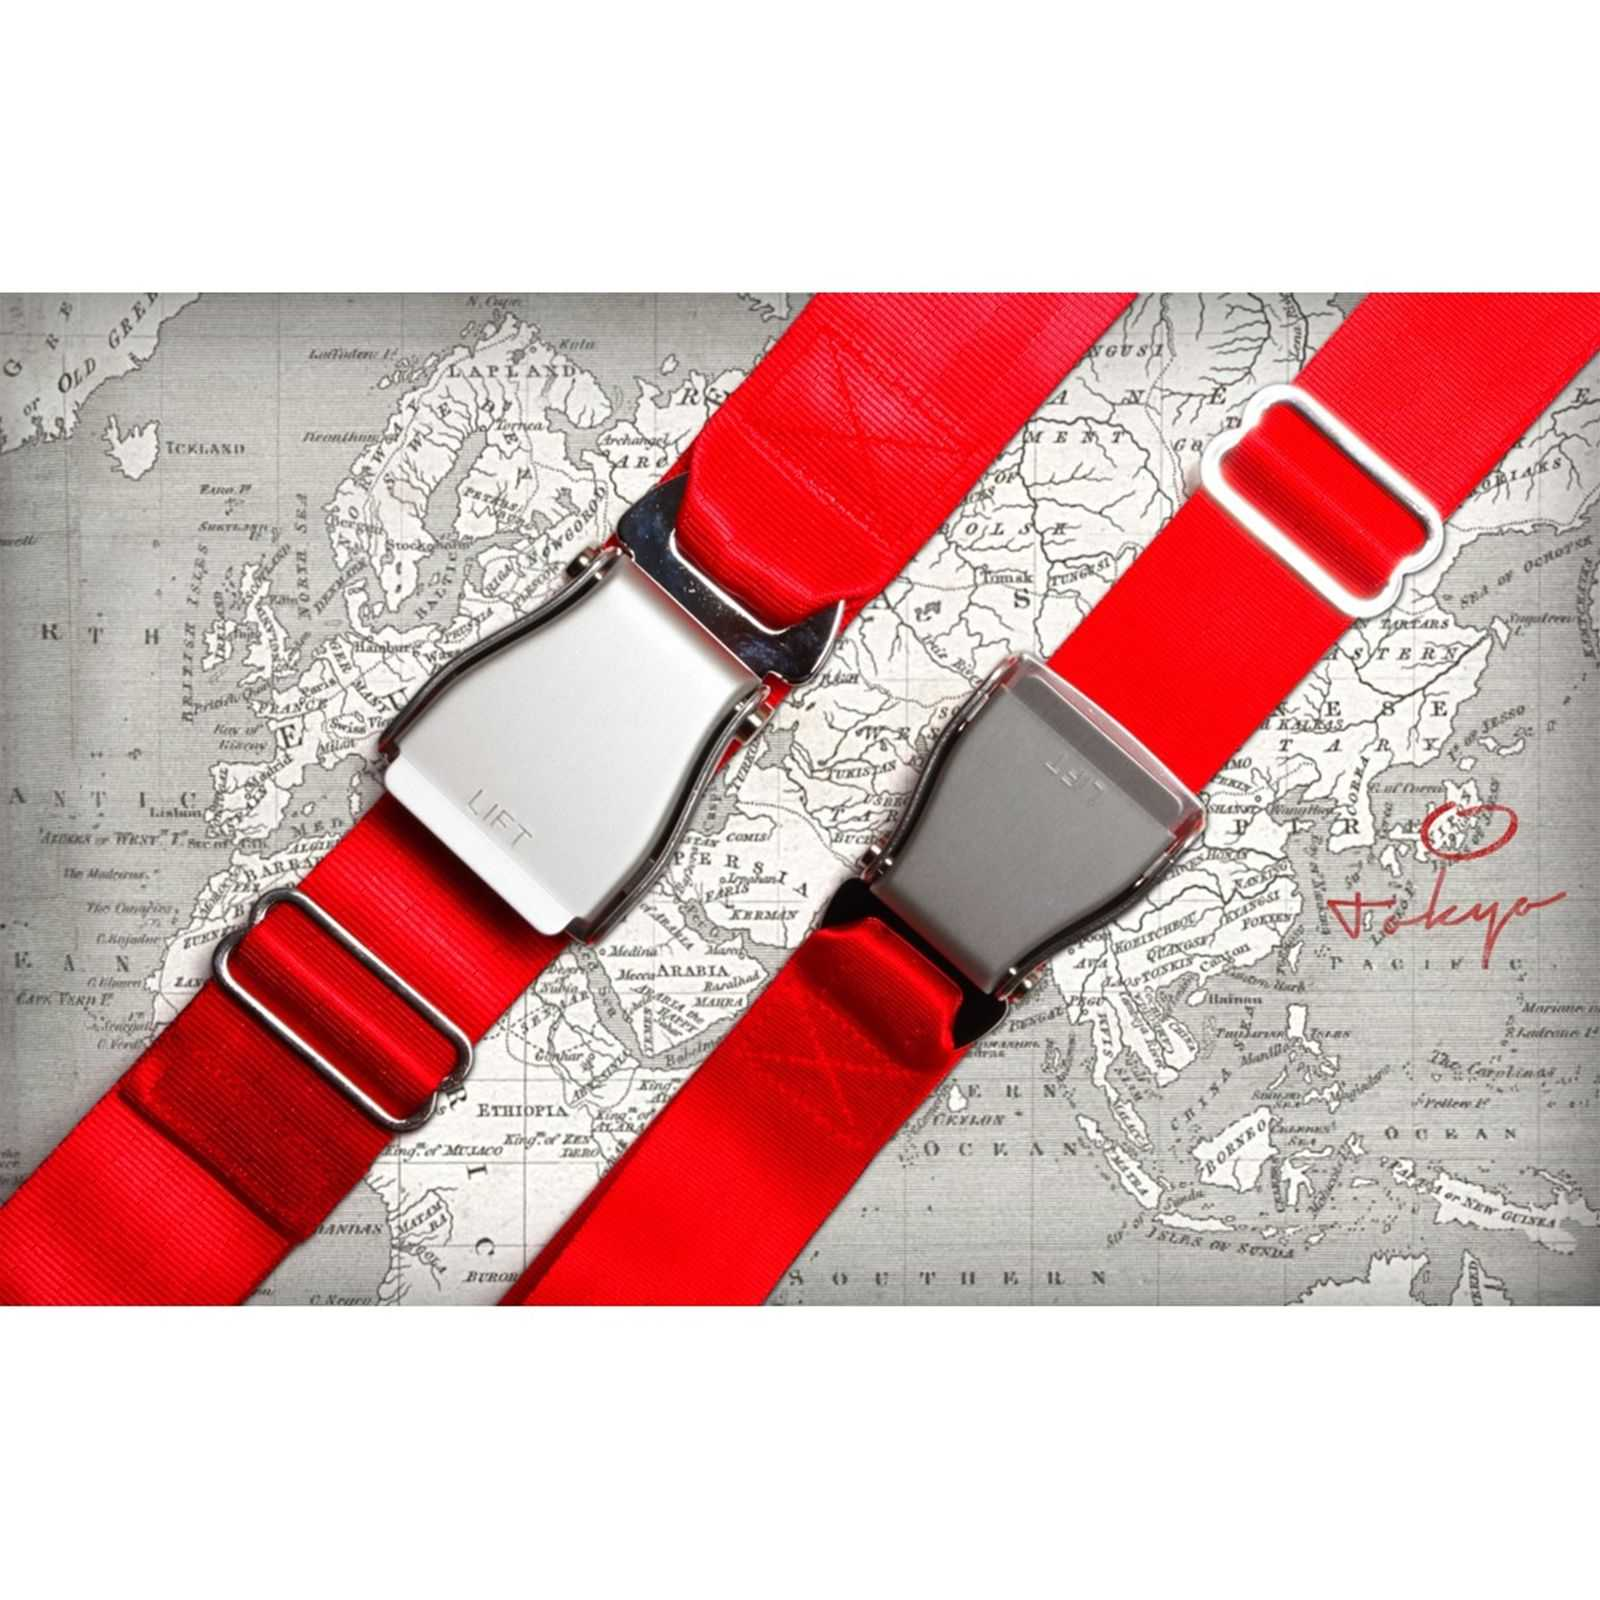 bbccbaf897d2 Fly Belts Ceinture d Avion - Ceinture - rouge   BrandAlley